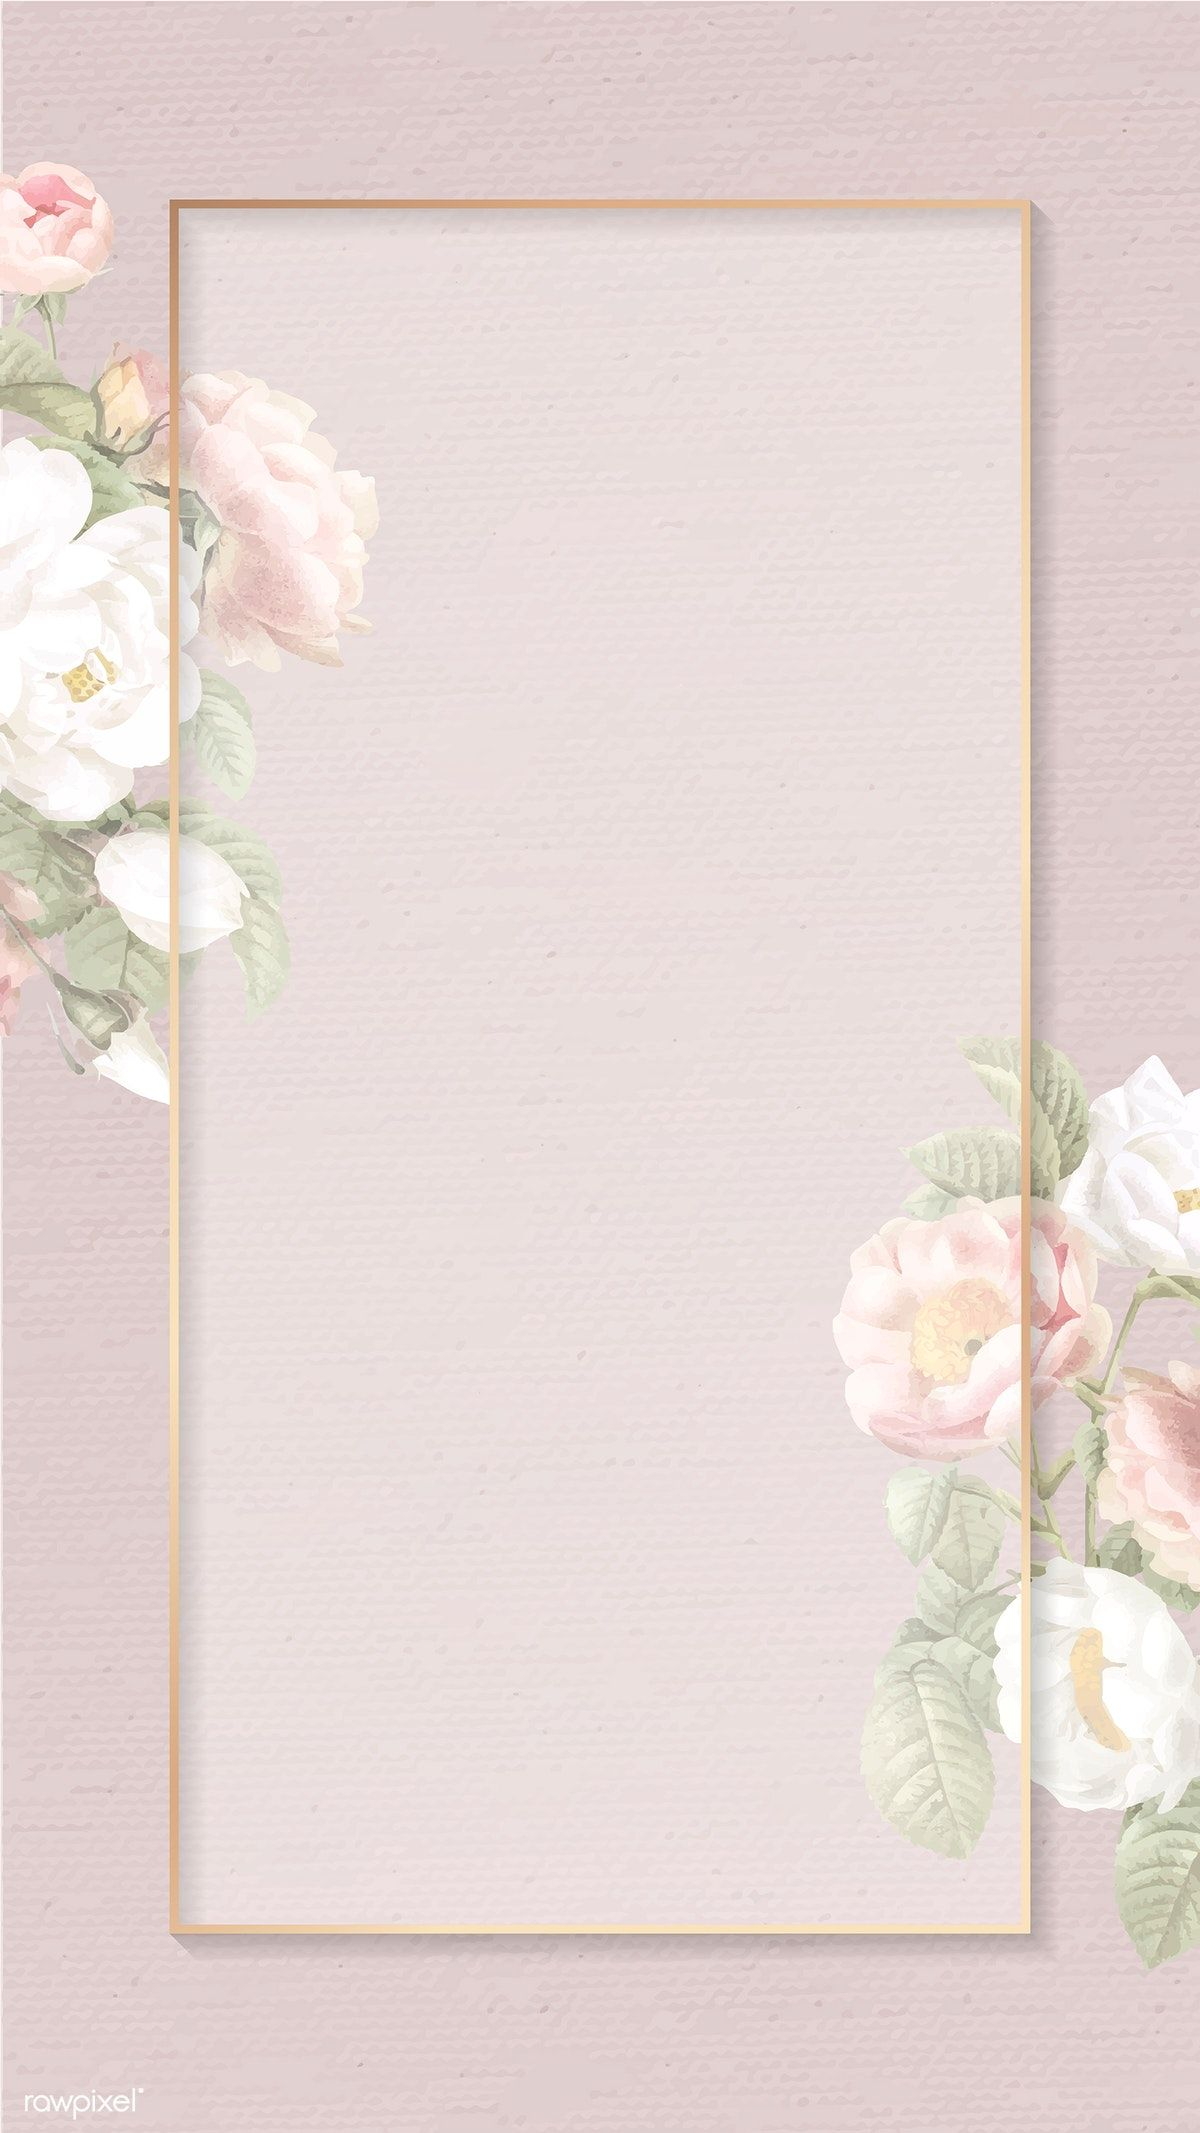 Download premium vector of Hand drawn floral rectangle gold frame card